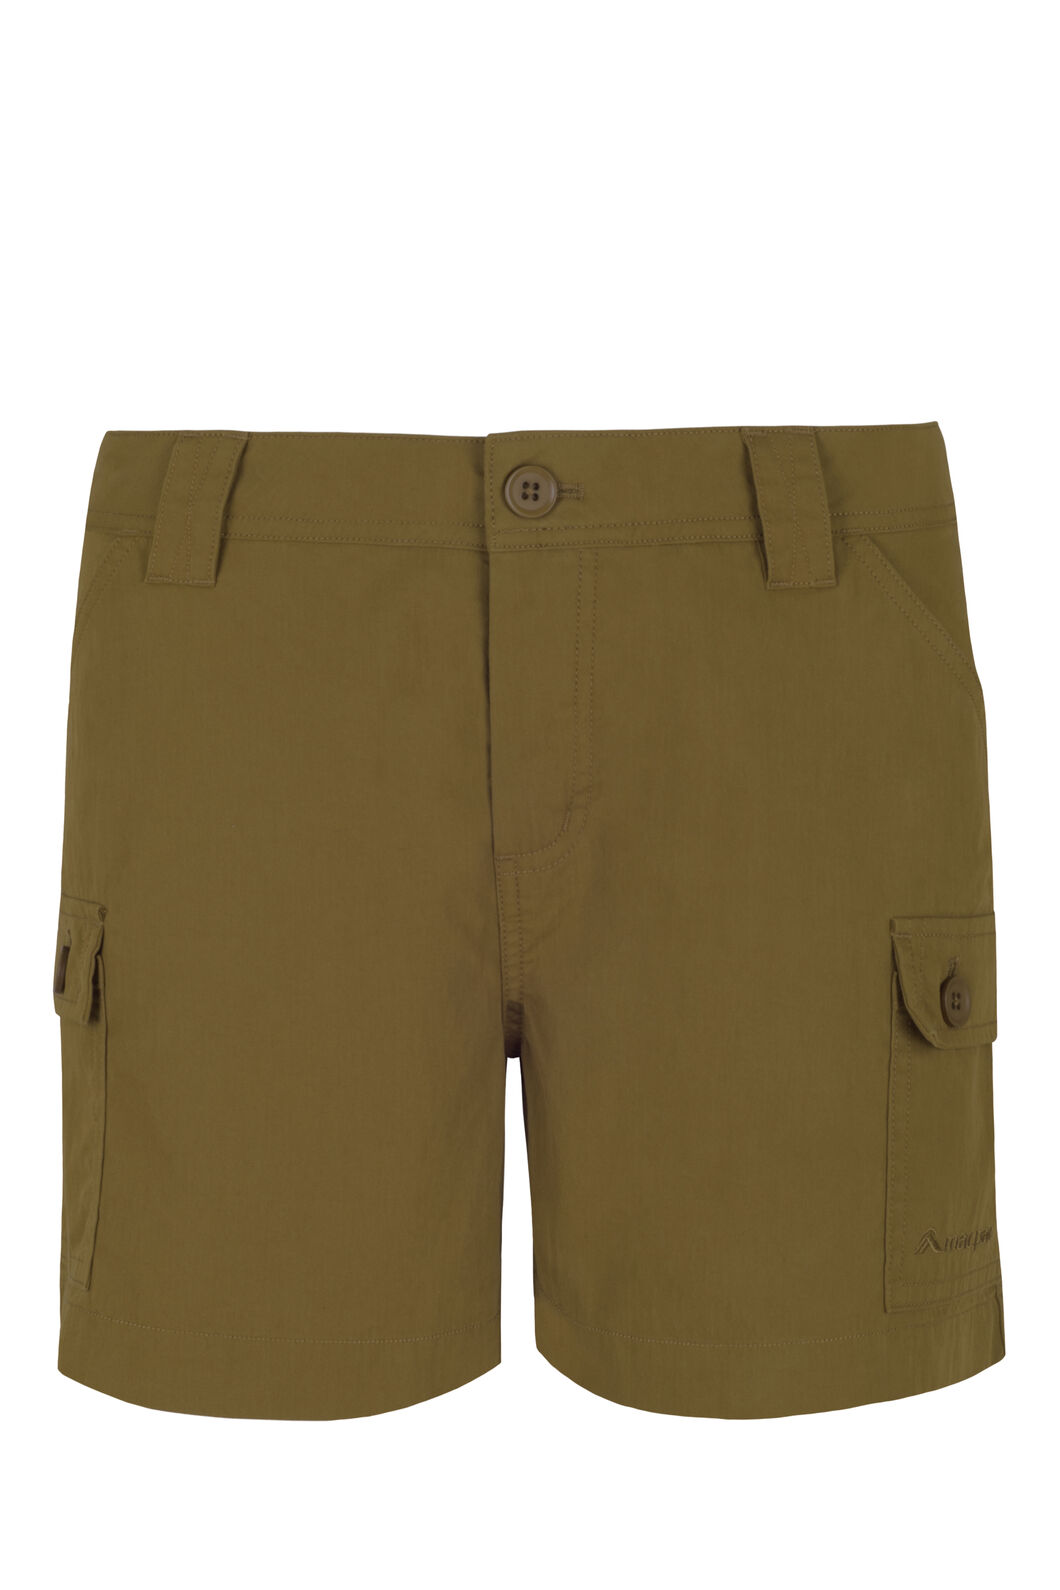 Macpac Matrix Shorts - Women's, Breen, hi-res